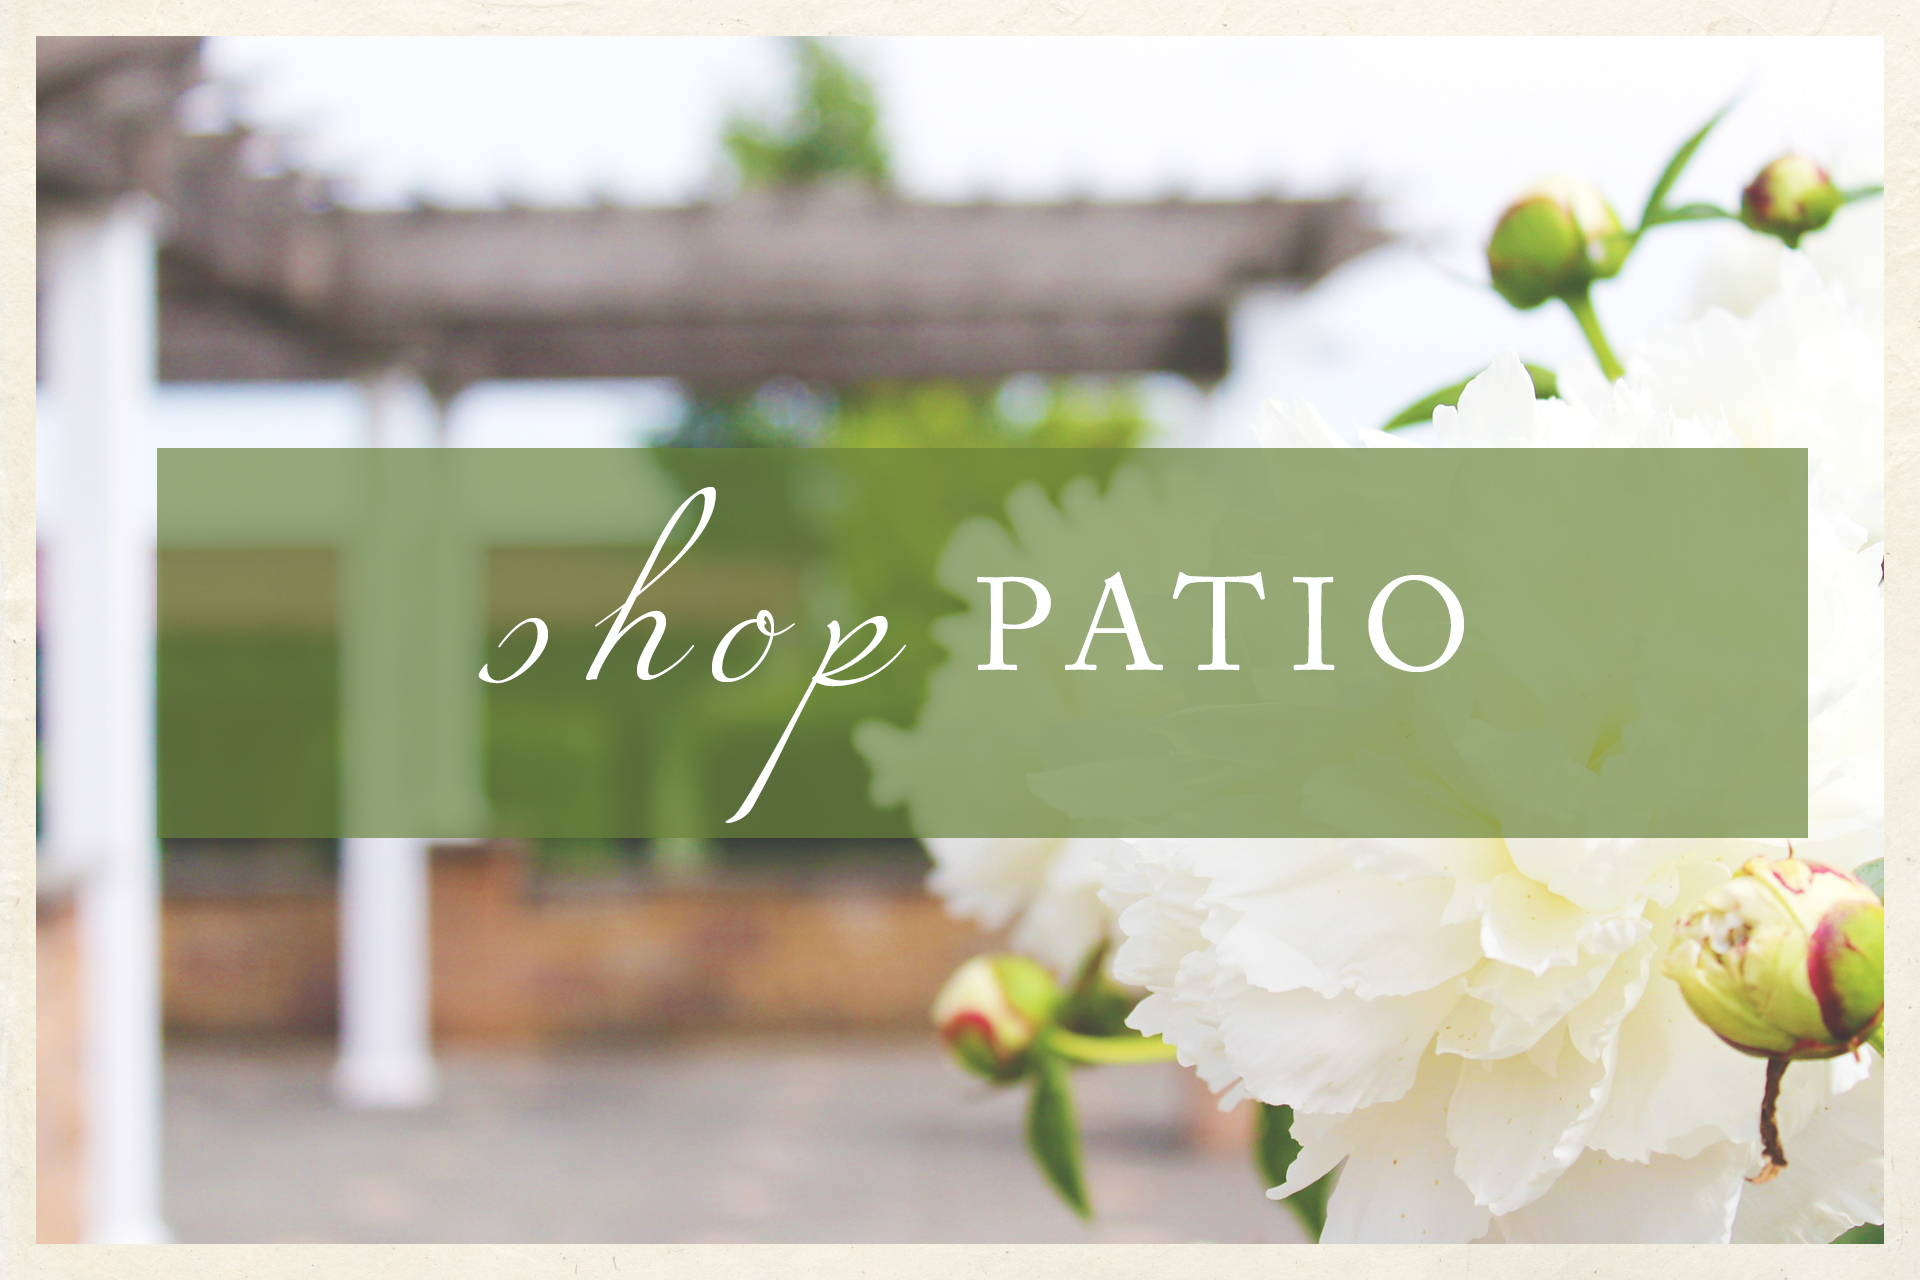 Shop Patio